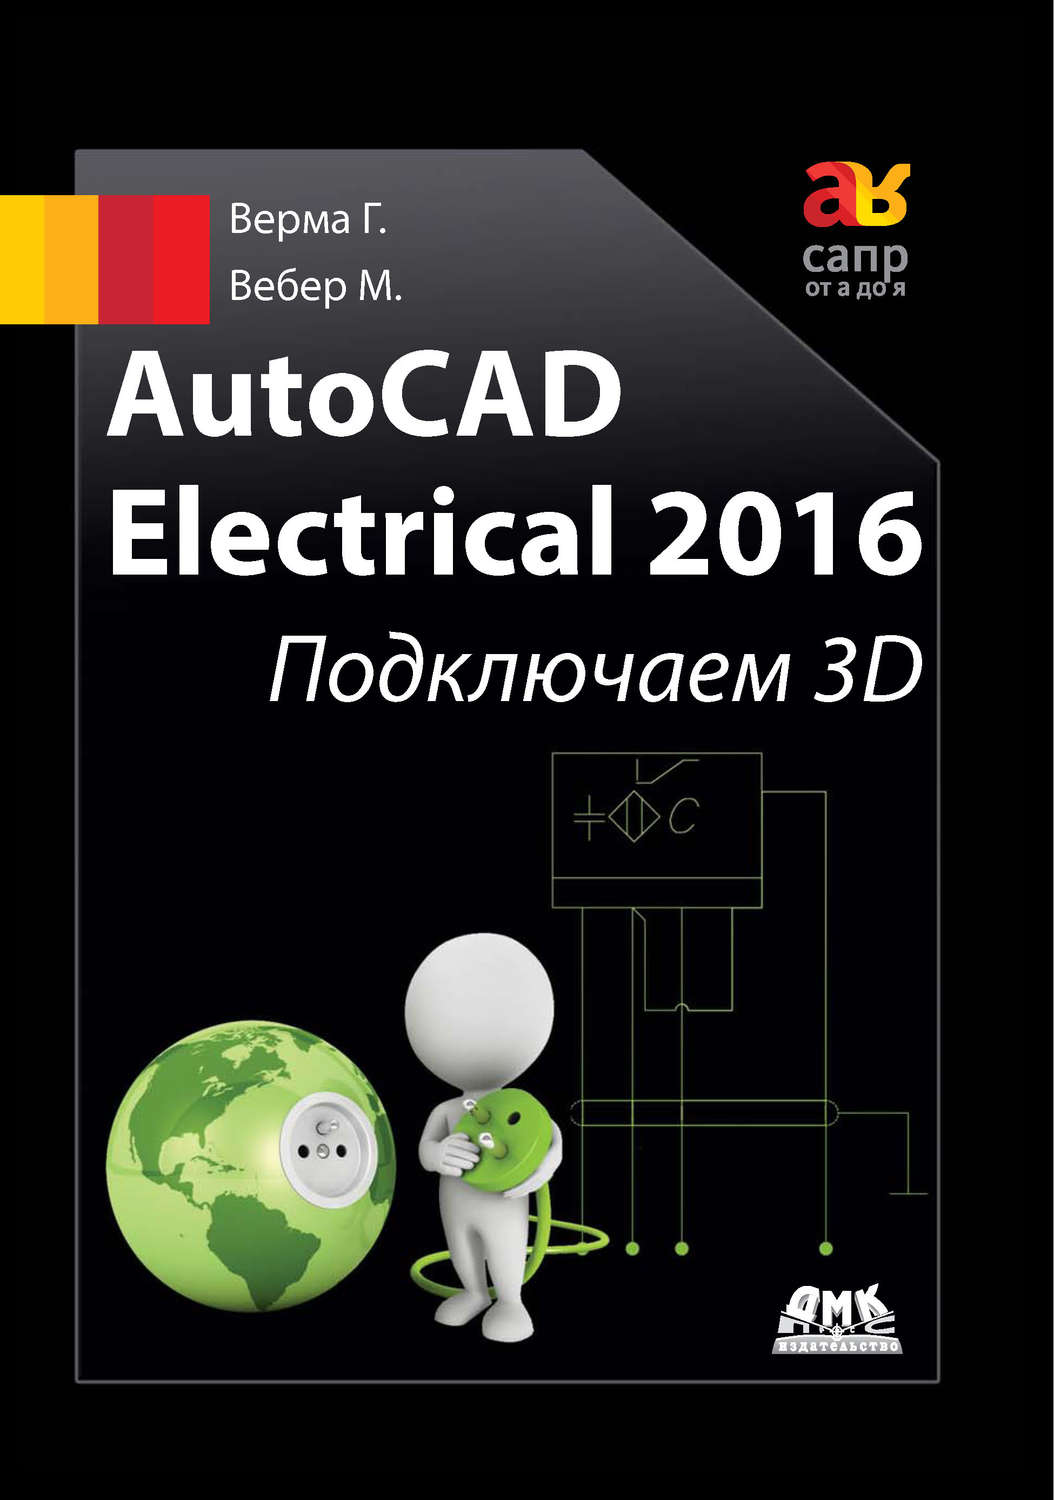 Книга по autocad electrical скачать